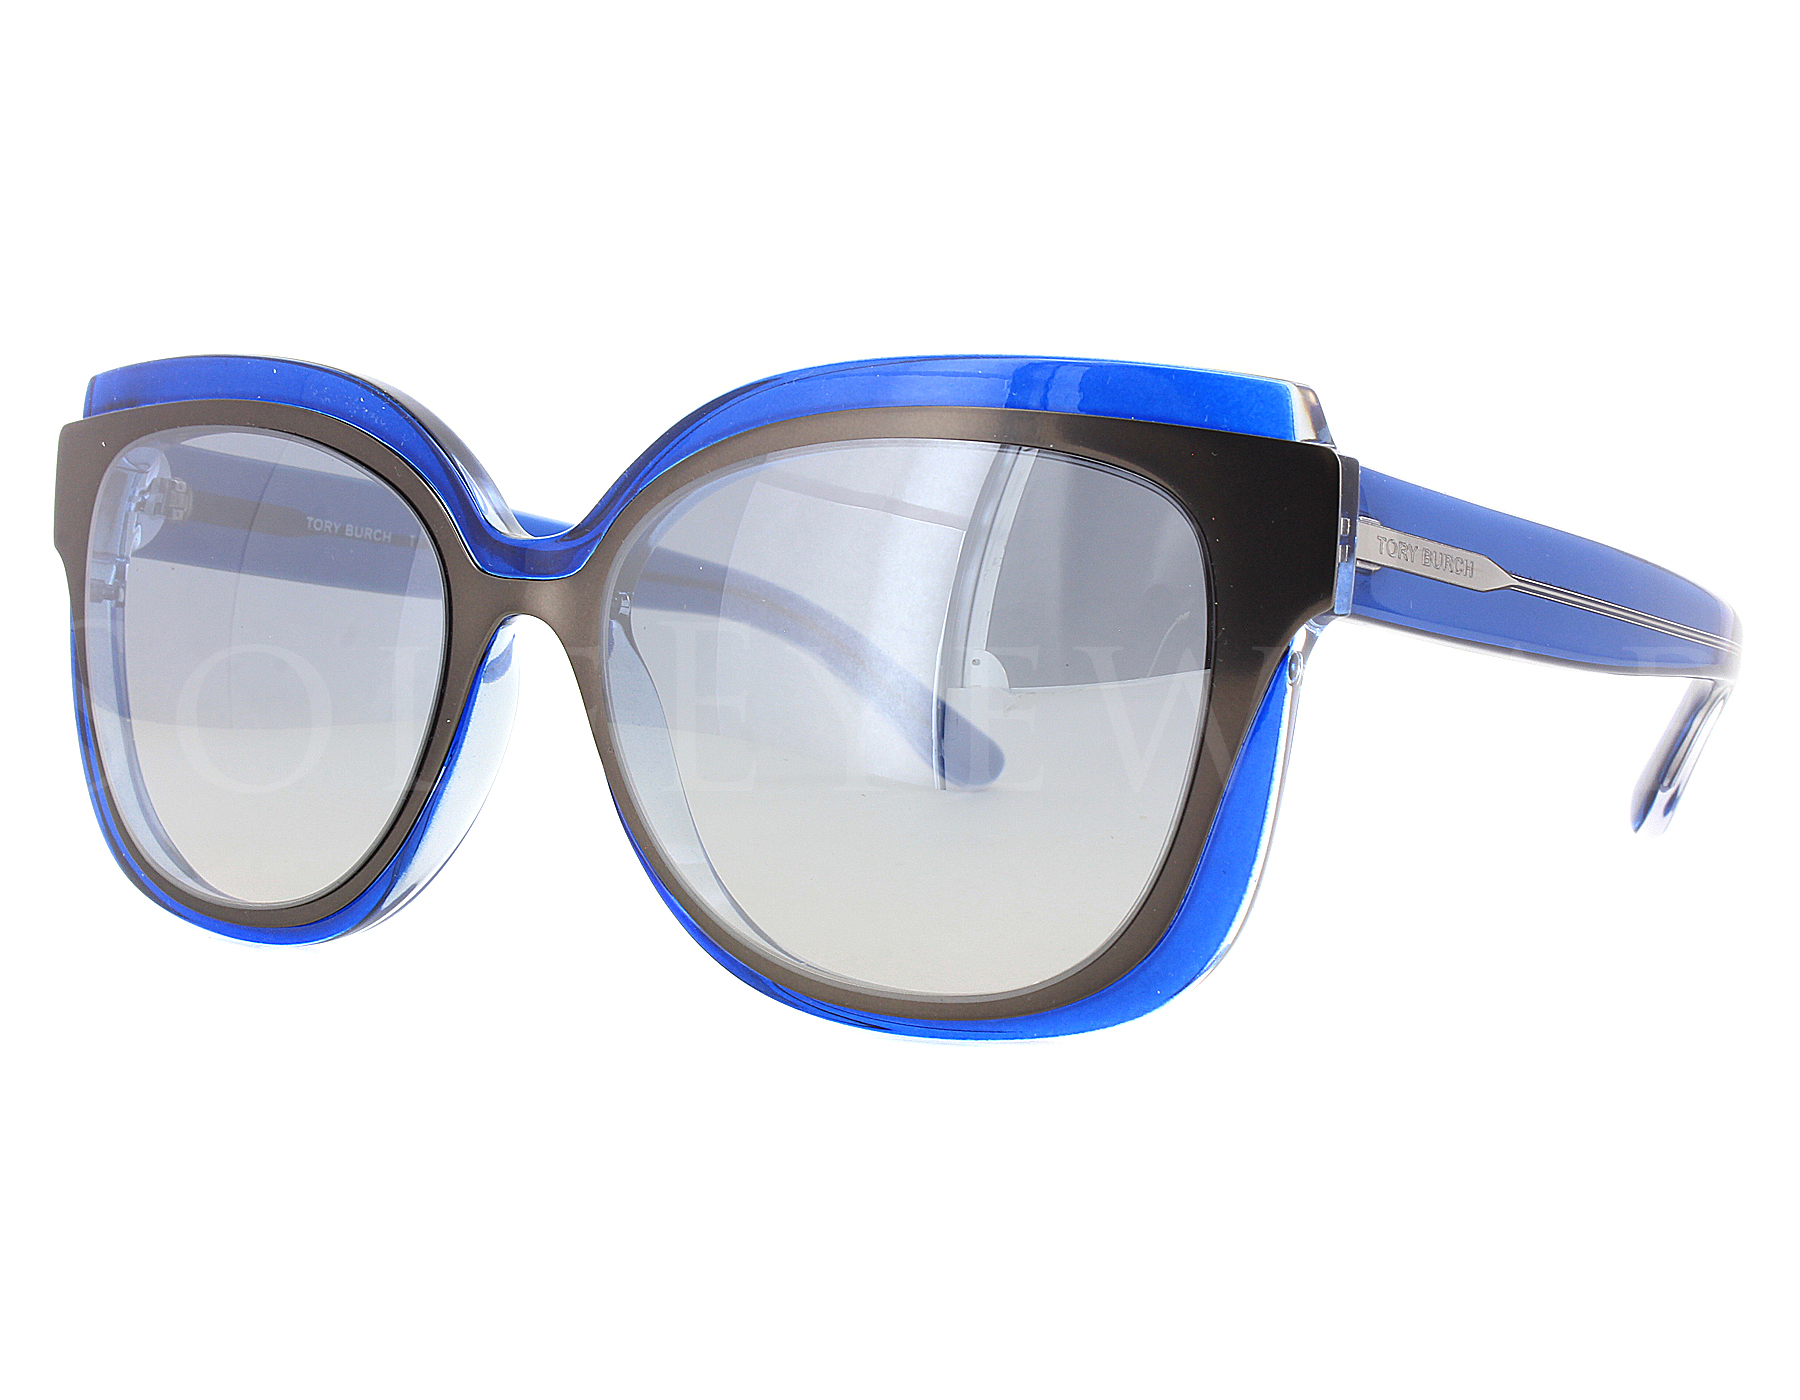 a0c02507f5b Details about NEW Tory Burch TY9046 16057B Navy Crystal   Pewter Flash  Gradient Sunglasses